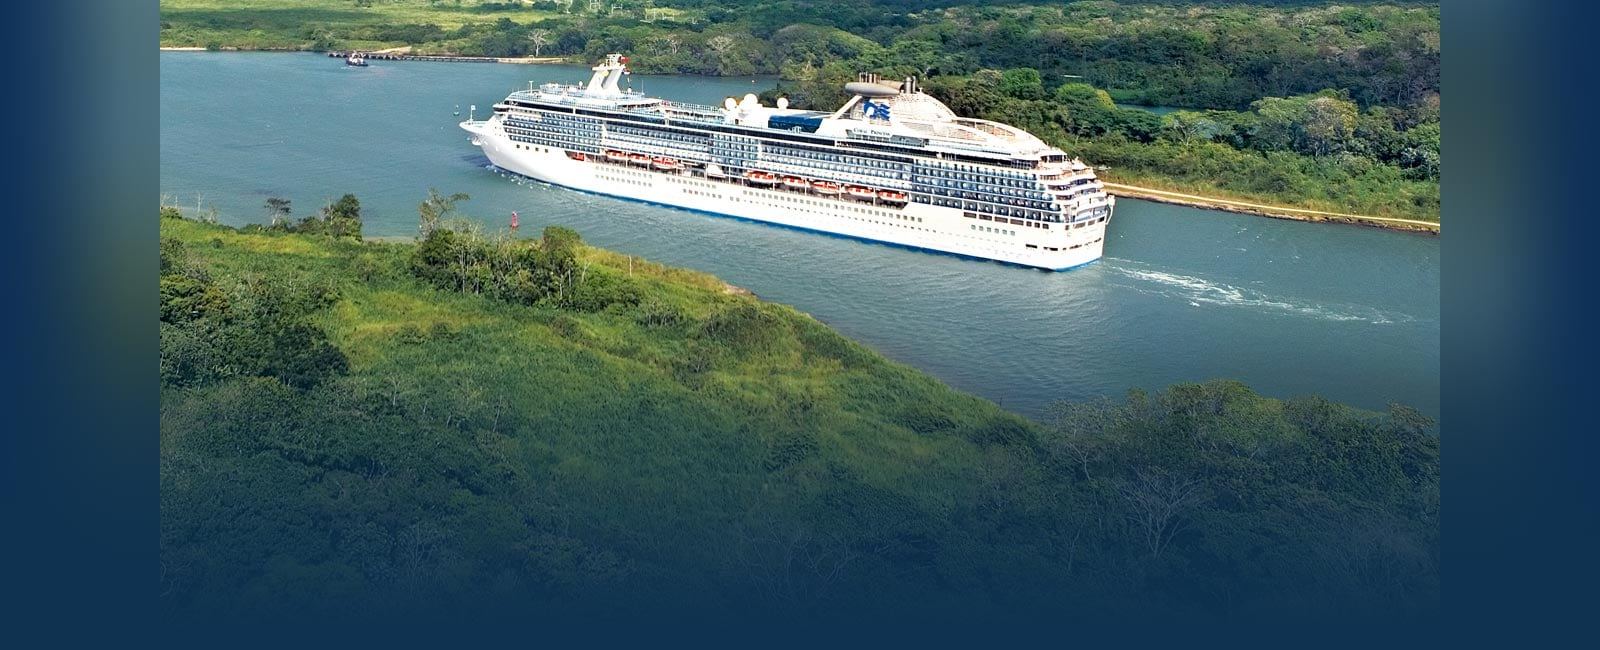 Coral Princess Cruise Ship Information Princess Cruises